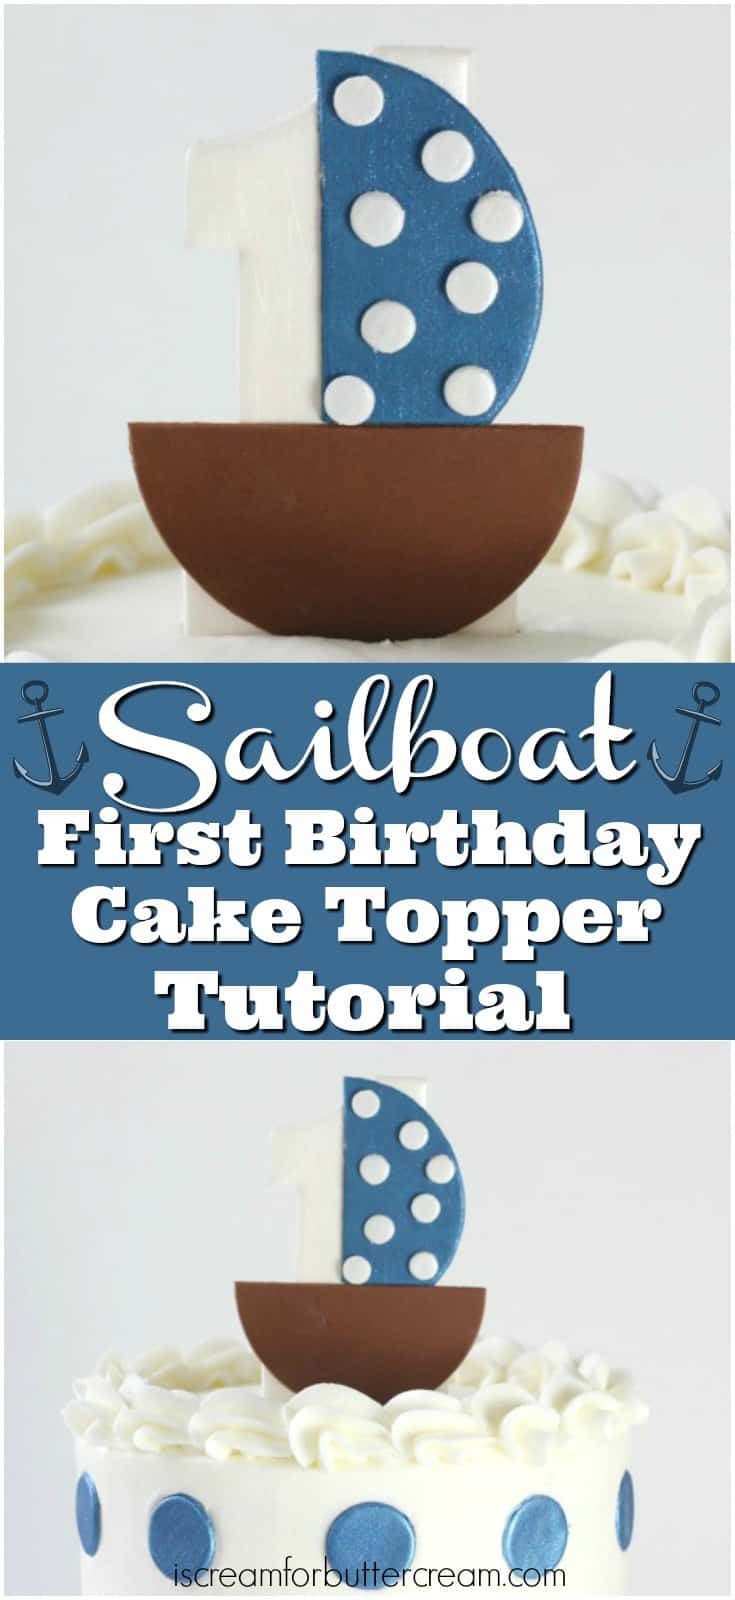 Sailboat First Birthday Cake Topper